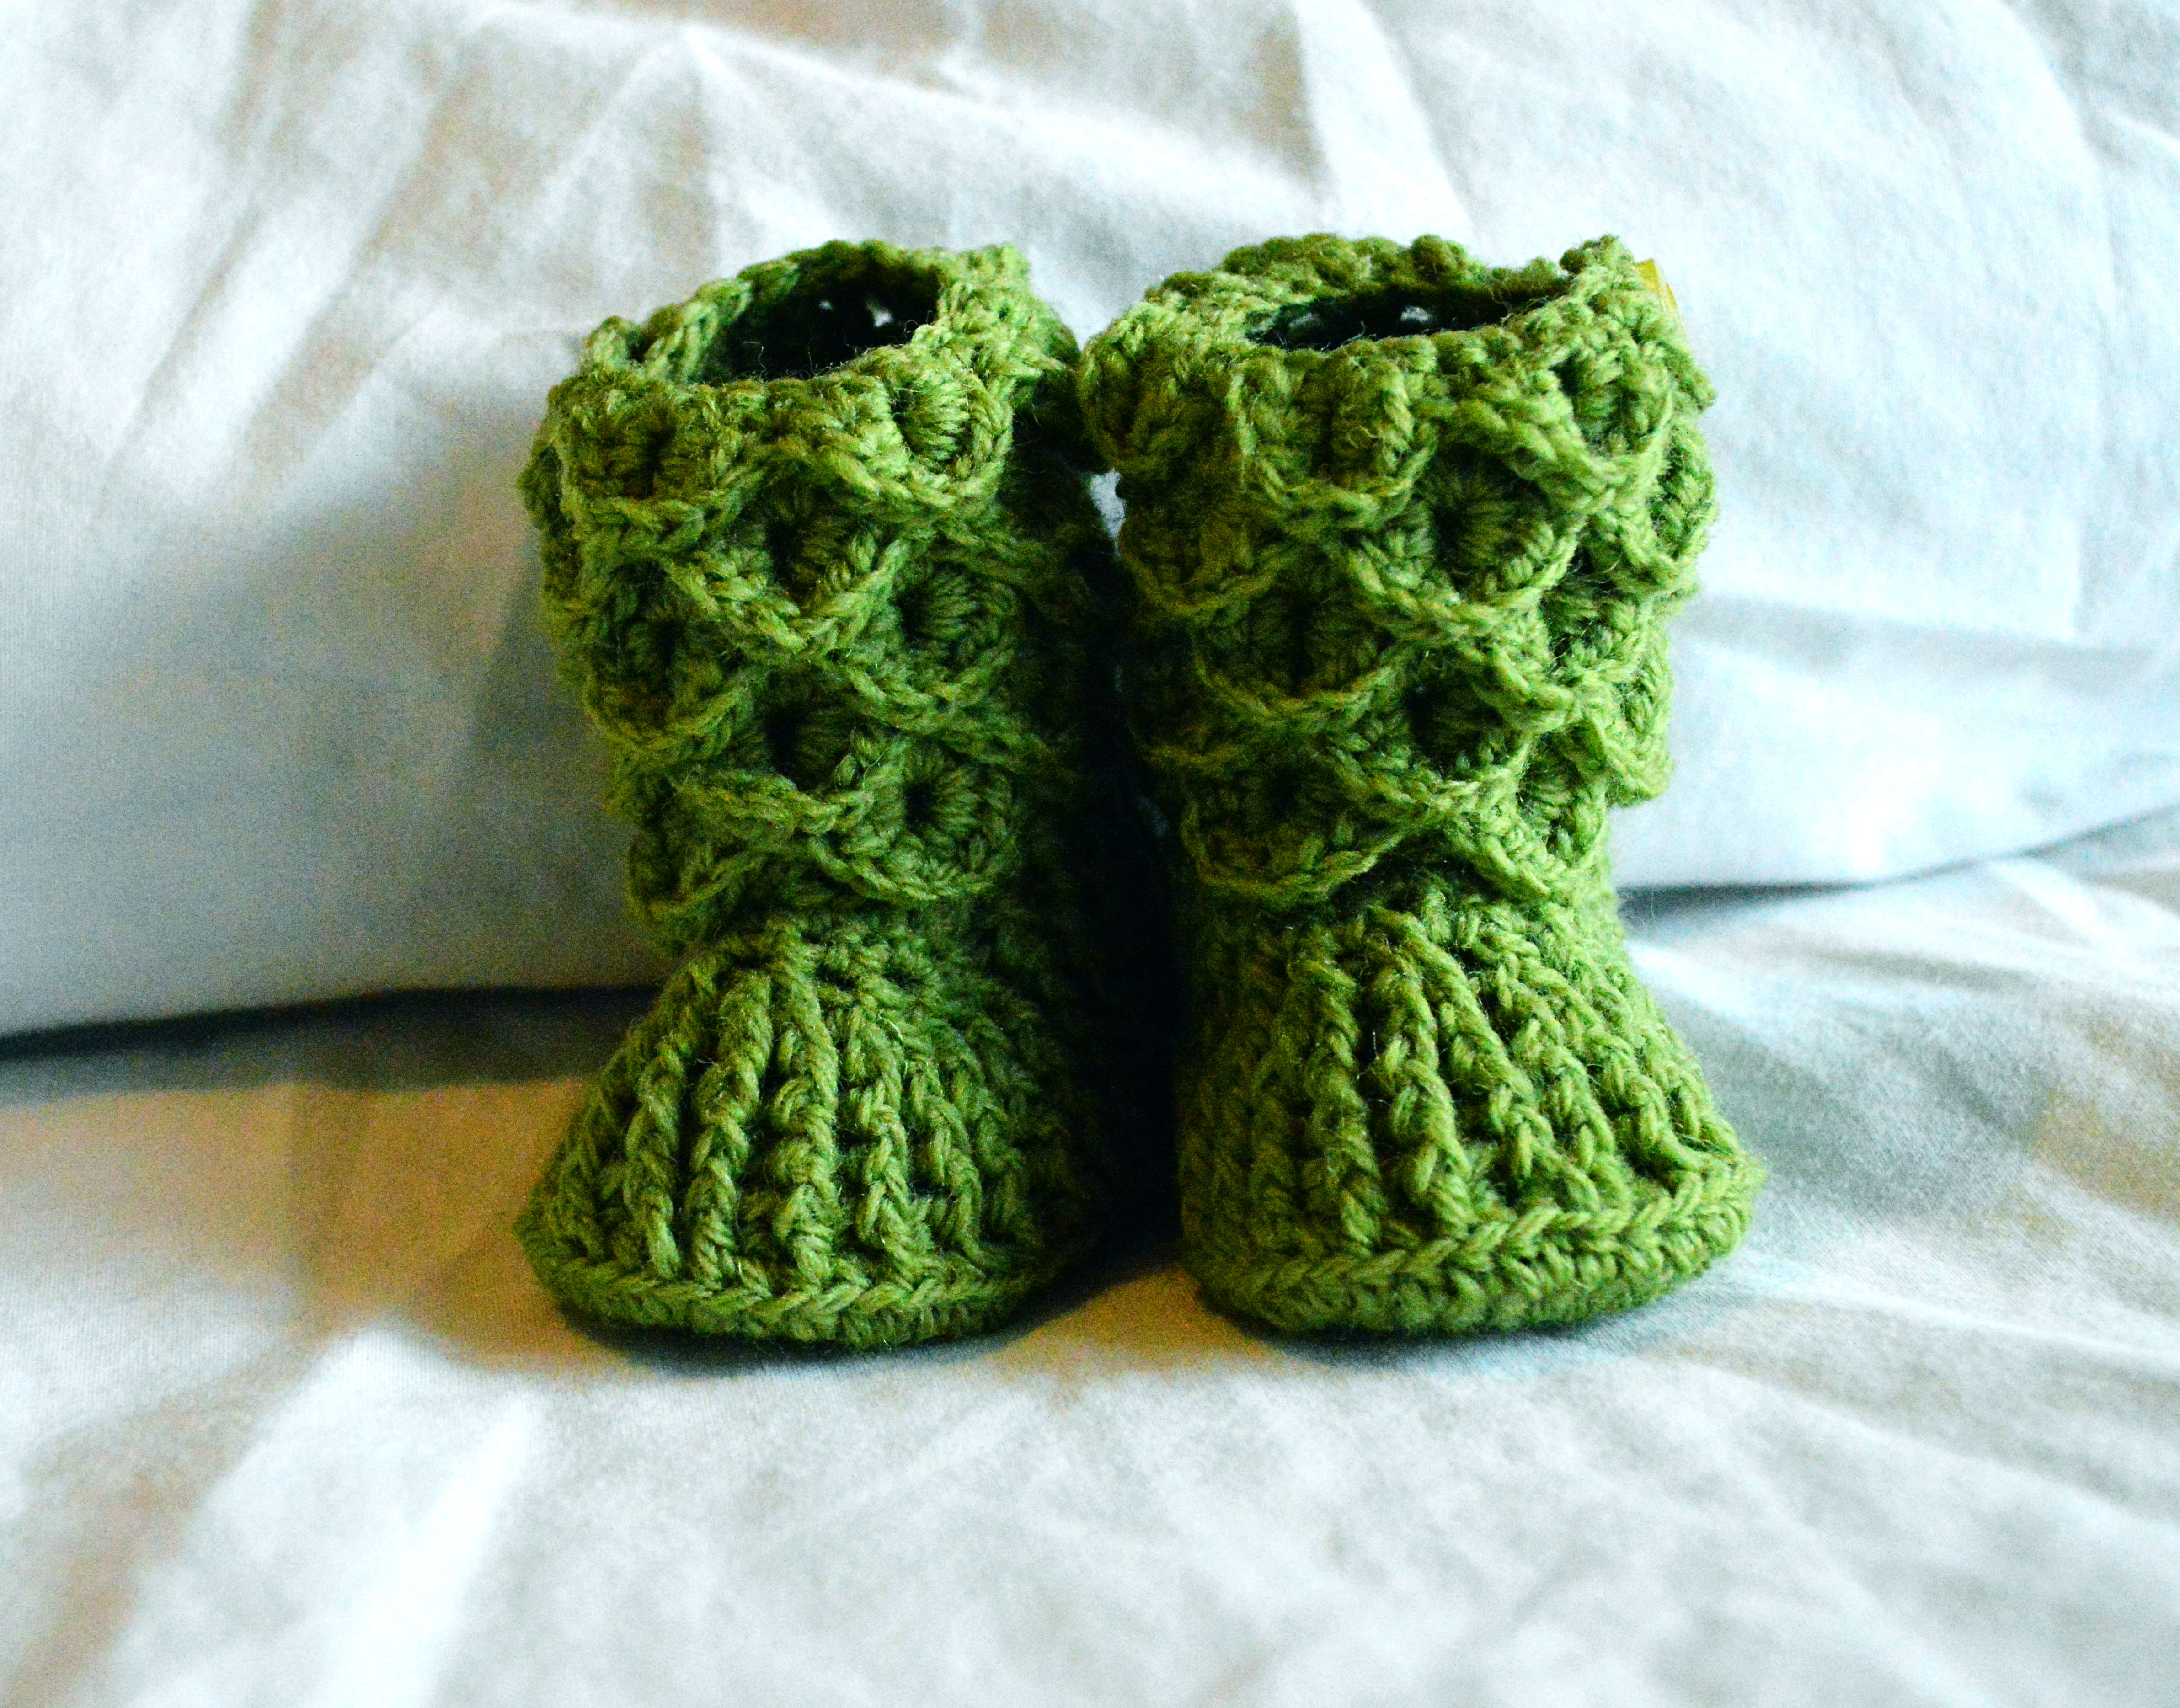 Free Crochet Patterns Using The Crocodile Stitch : Crochet: More Crocodile Stitch Booties ? chelsiebrady